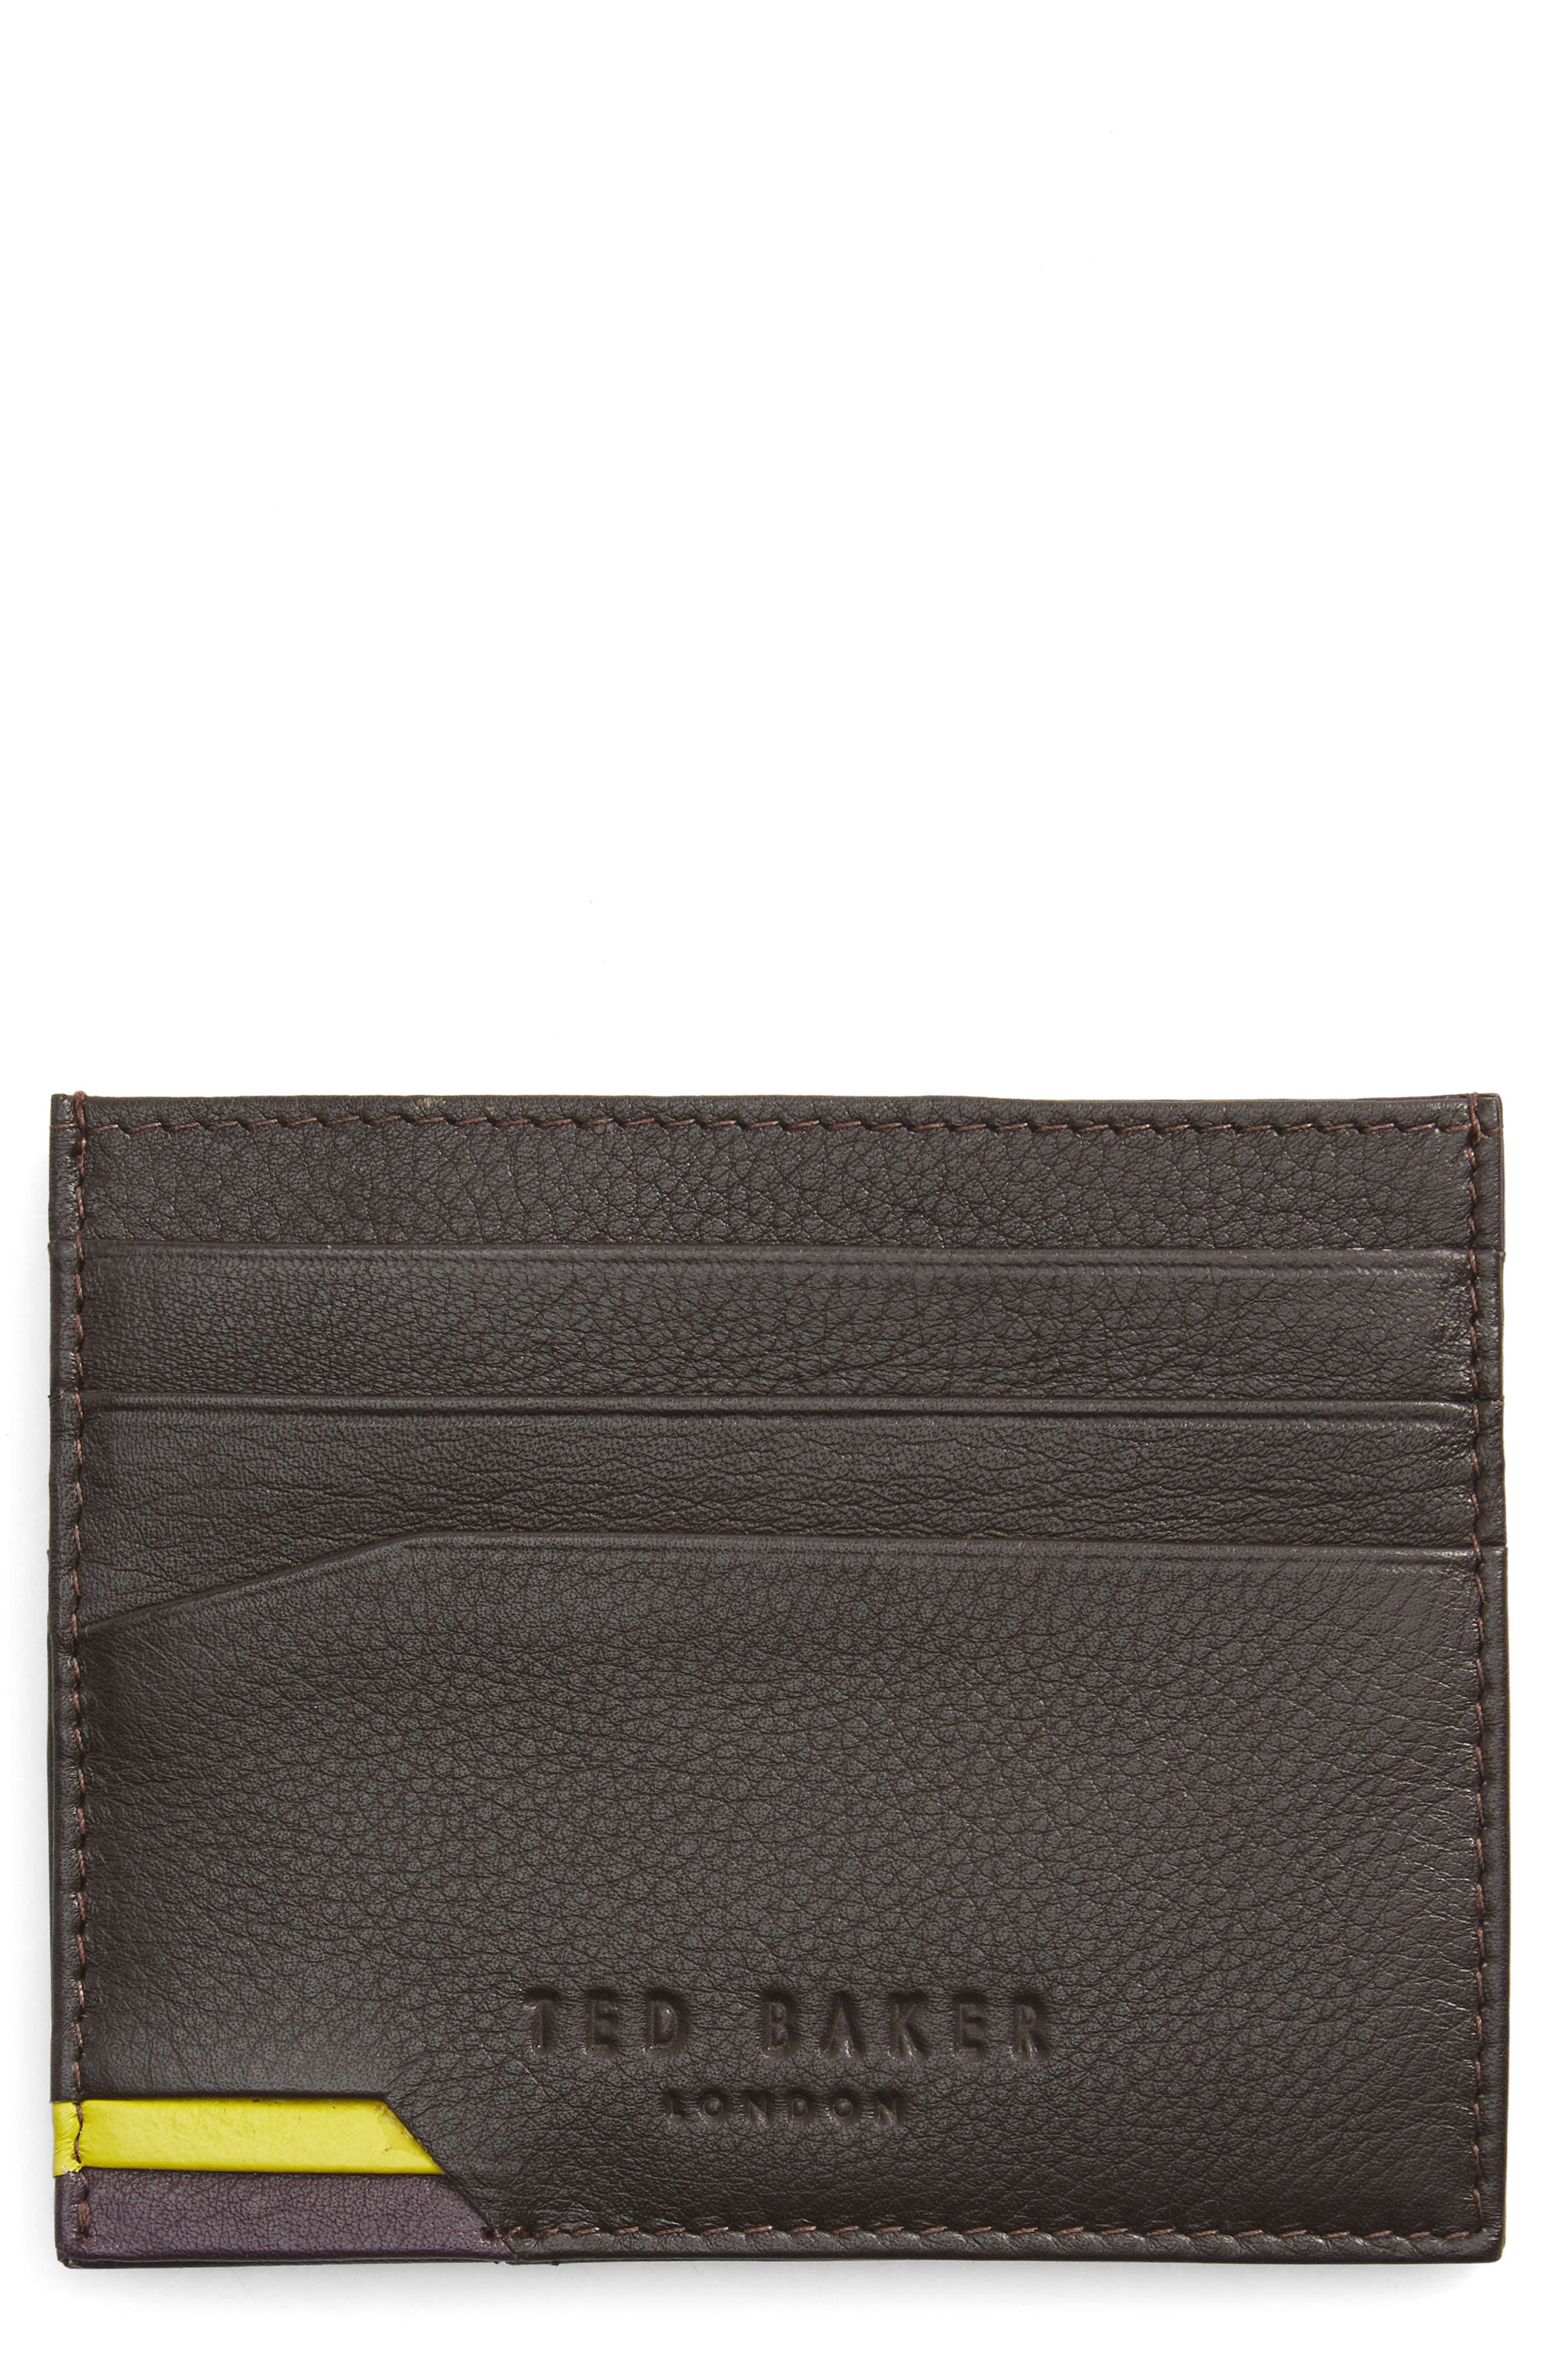 Corcard Card Case,                             Main thumbnail 1, color,                             211